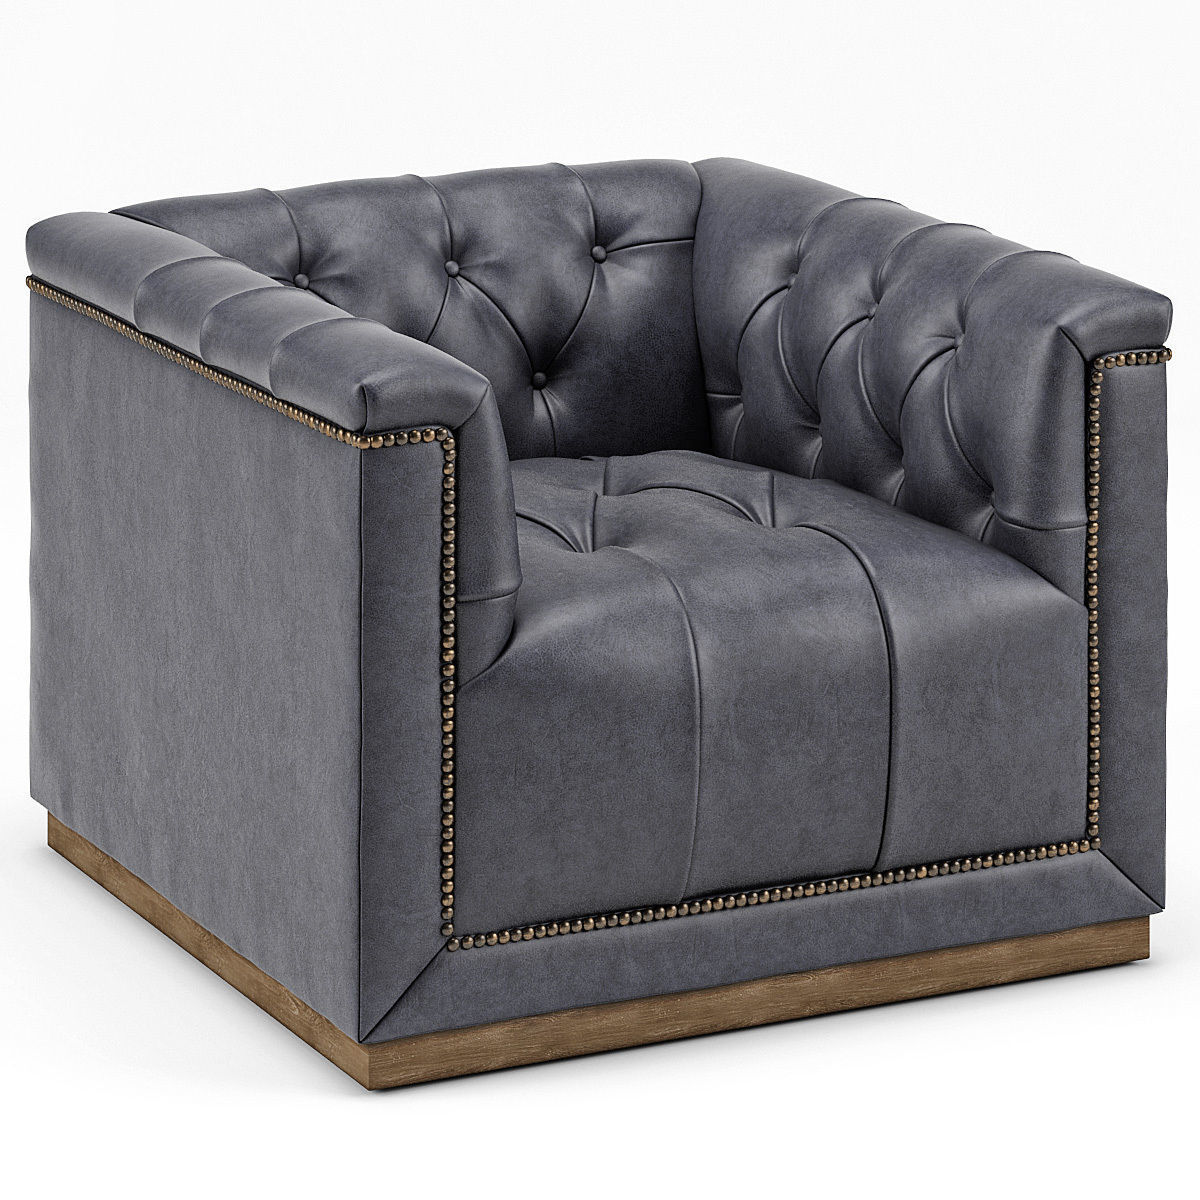 3d Model Emmy Rustic Lodge Black Leather Tufted Cube